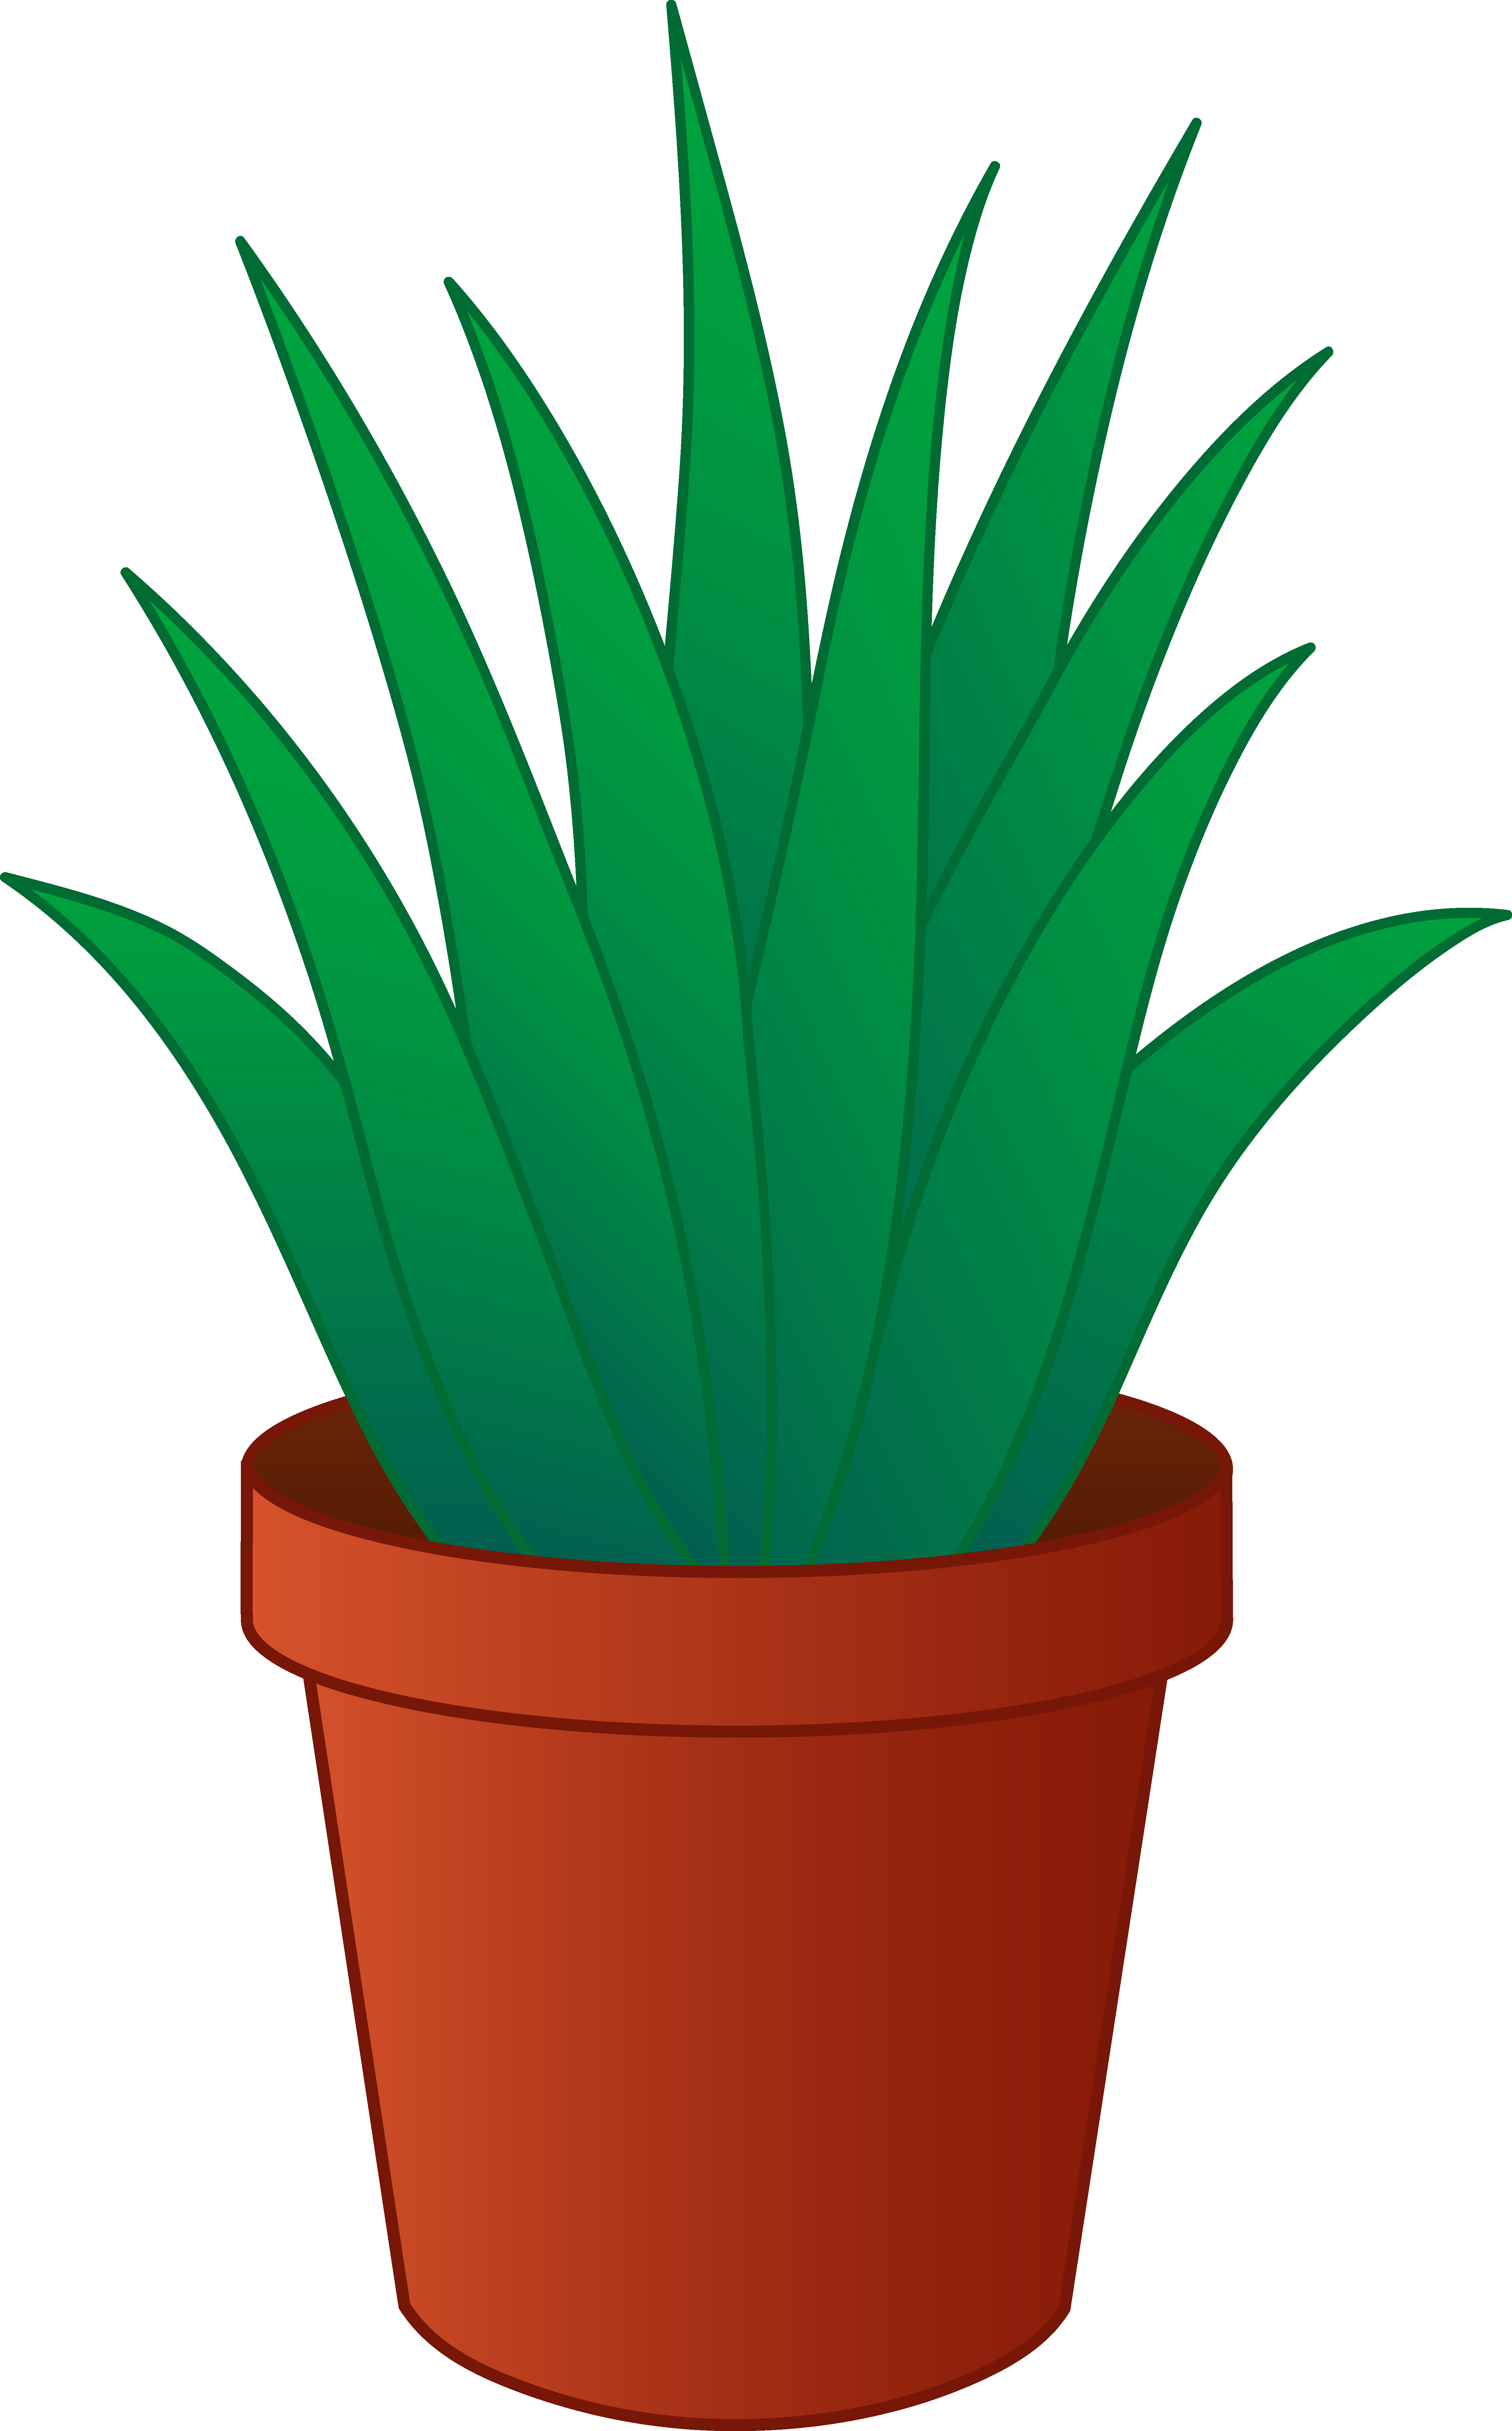 Tree growing clipart picture library download Plants Clip Art Free | Clipart Panda - Free Clipart Images picture library download